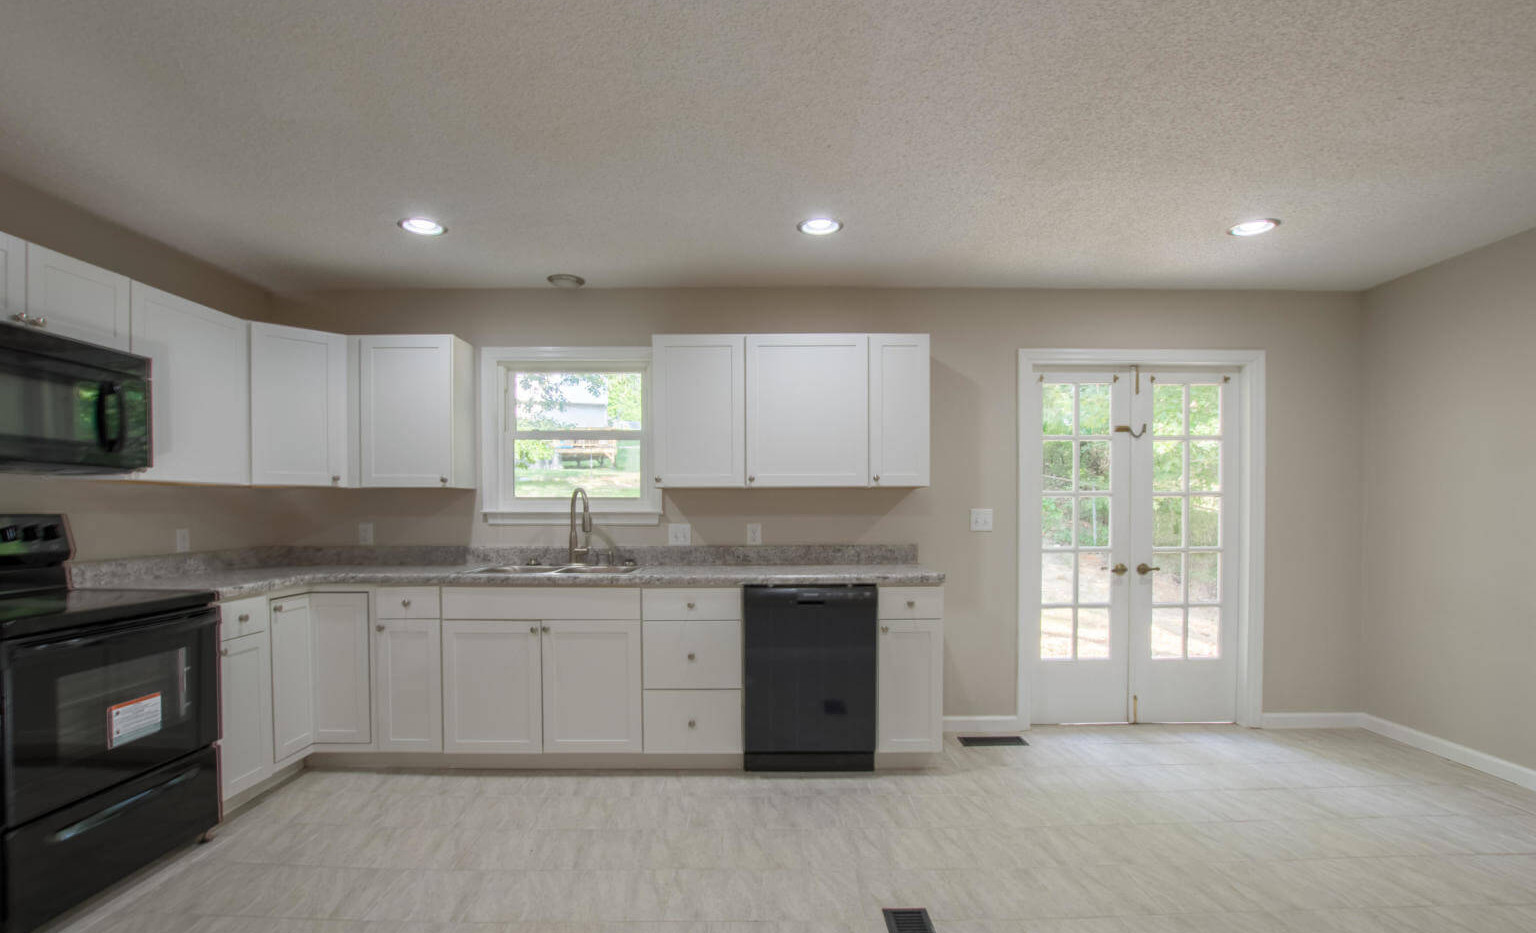 7512 Irongate Dr, Hixon - Kitchen 3.jpg